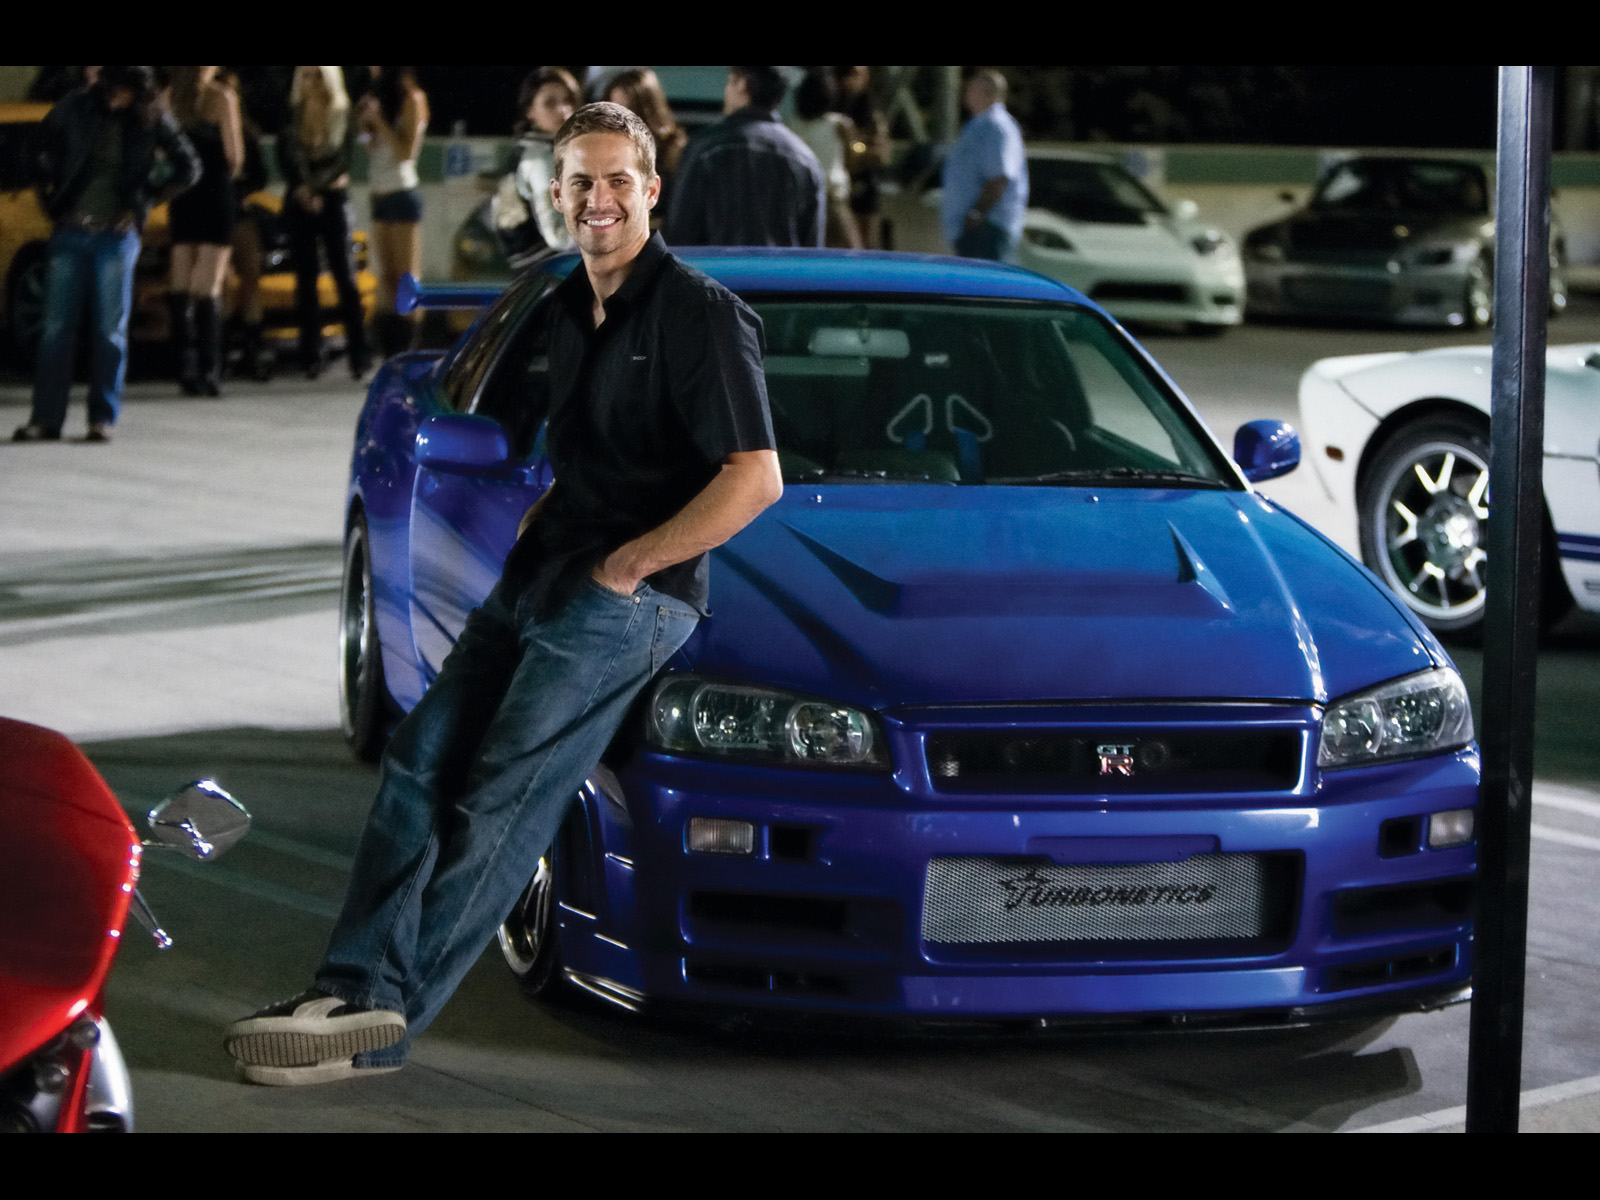 fast and furious 4 Cars Wallpapers And Pictures car imagescar 1600x1200